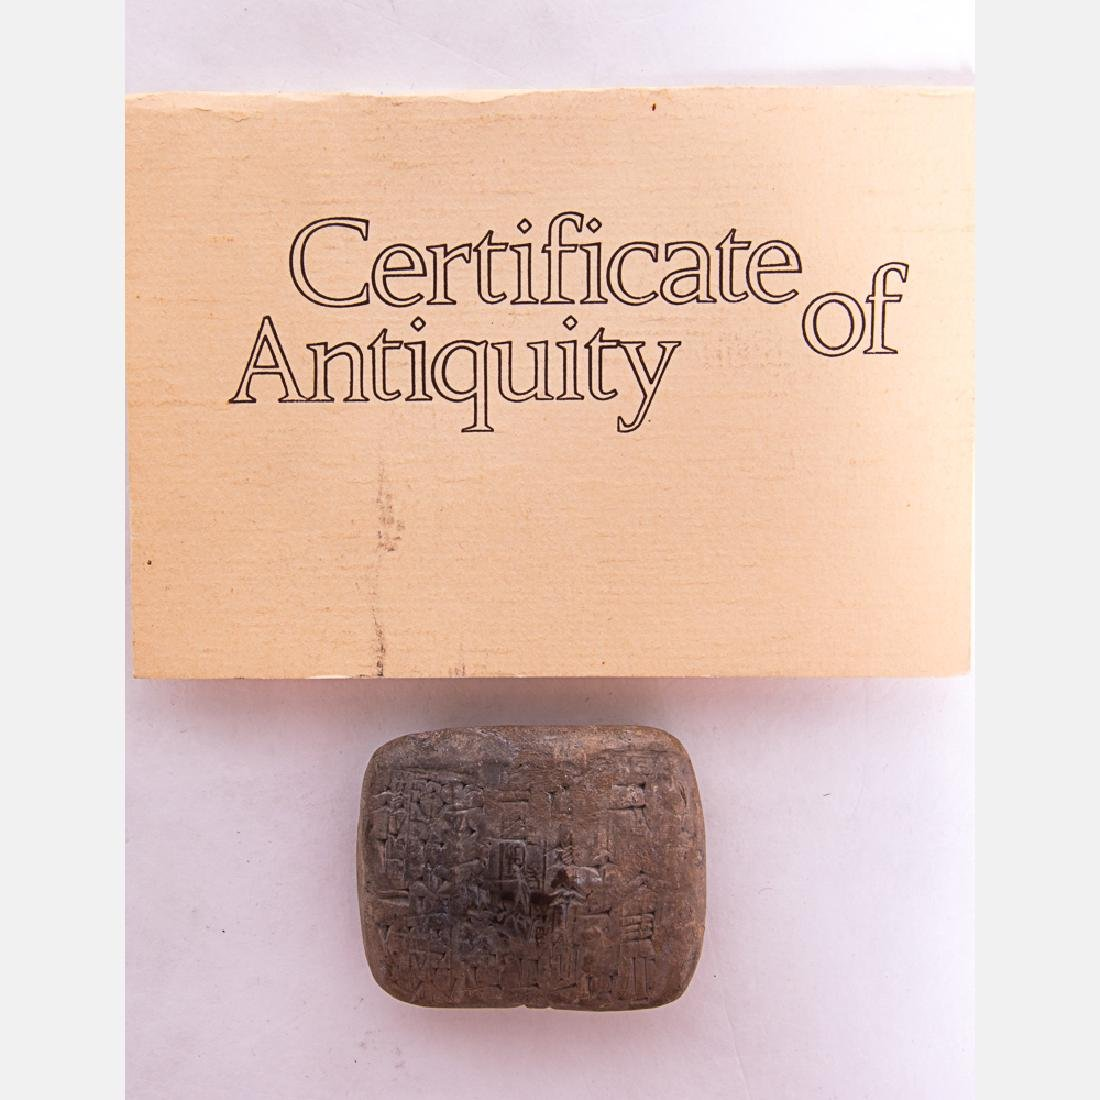 A Cuneiform Tablet from Ancient Sumer, dates from c. - 3